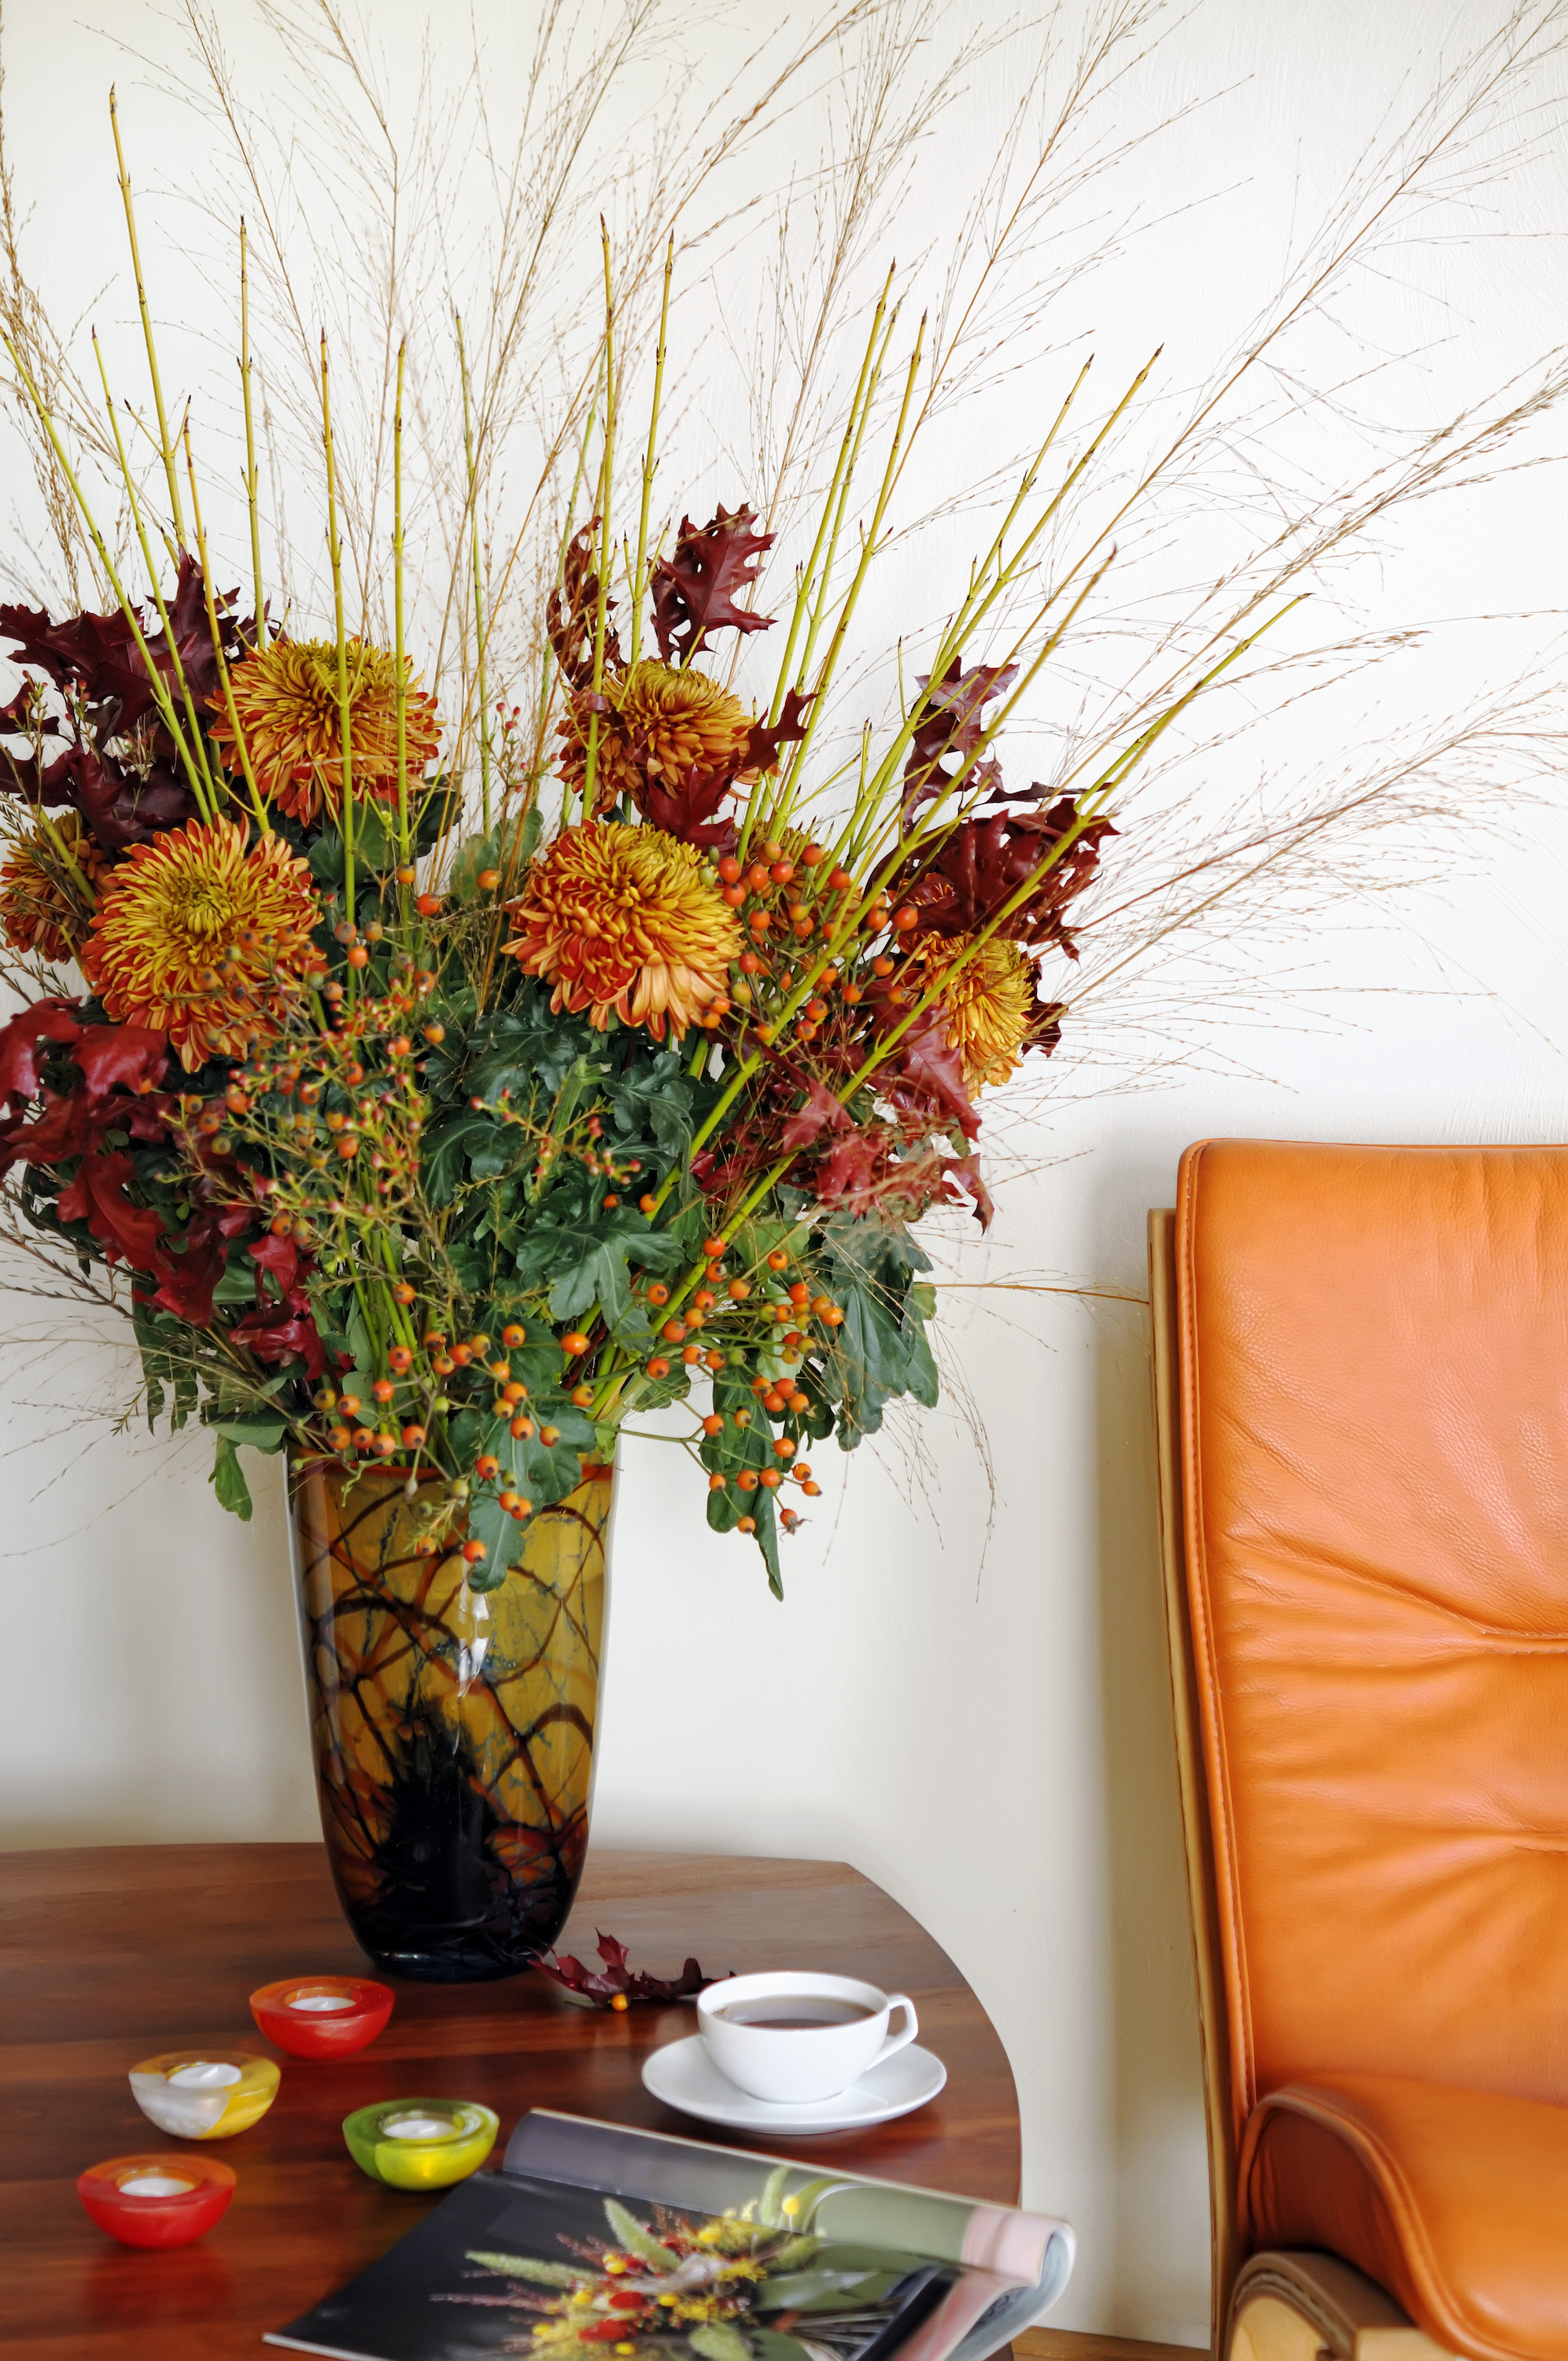 Knock, Knock! The Best Thanksgiving Decorating Ideas Are Here! thanksgiving decorating ideas Knock, Knock! The Best Thanksgiving Decorating Ideas Are Here! Start Prepping for November with These Thanksgiving Decorating Ideas 1